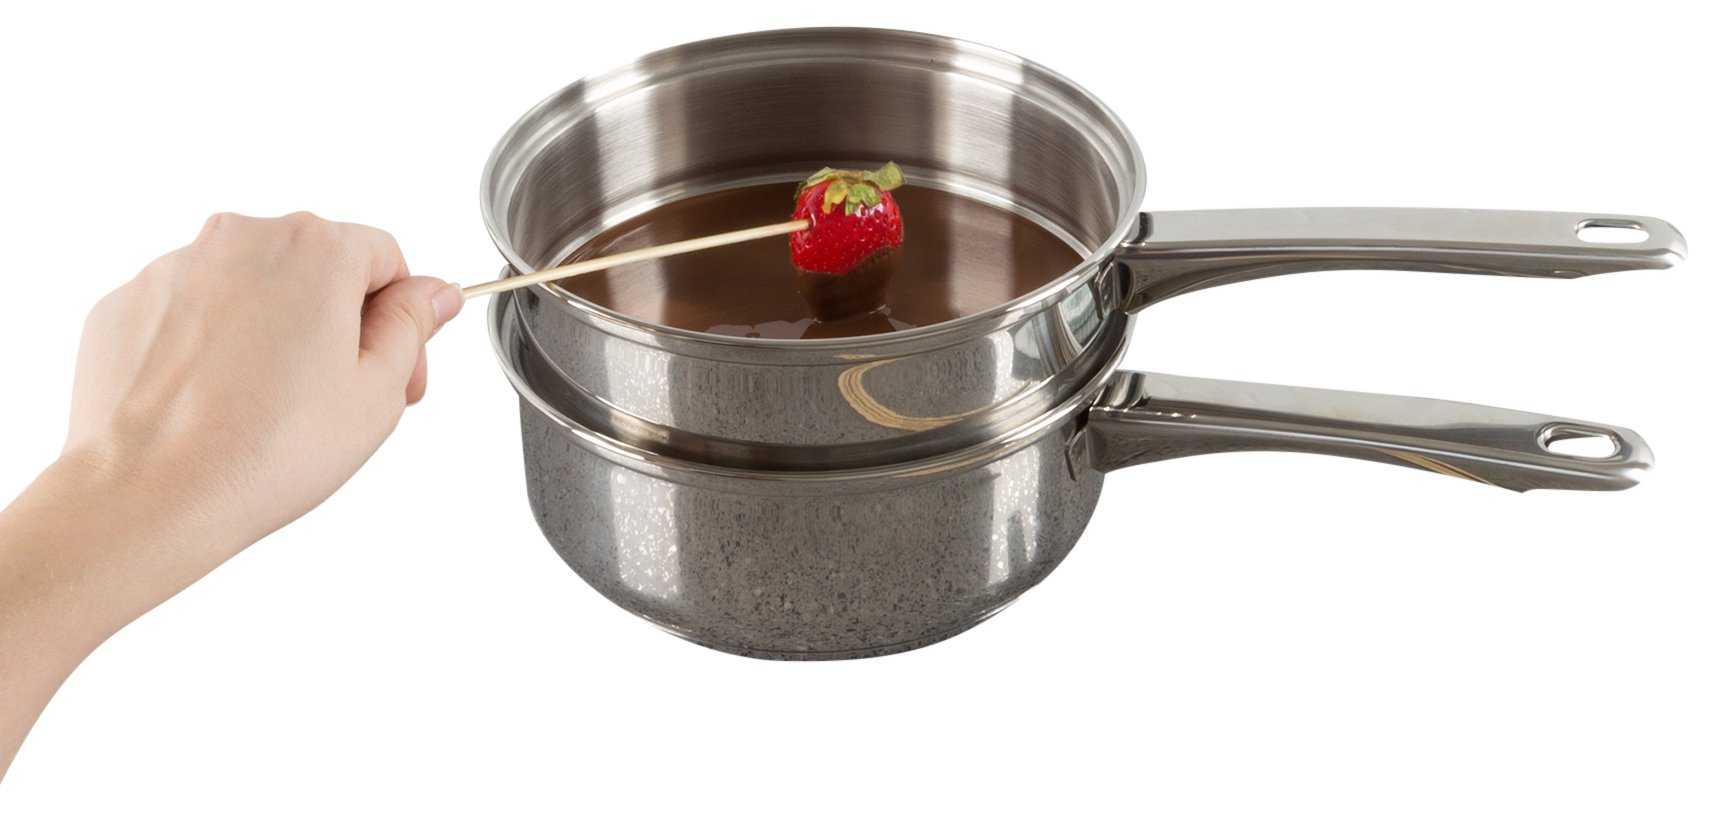 Stainless Steel 6 Cup Double Boiler – 1.5 Quart Saucepan 2-in-1 Combo with Vented Glass Lid- Kitchen Cookware with Measurements by Classic Cuisine by Classic Cuisine (Image #1)